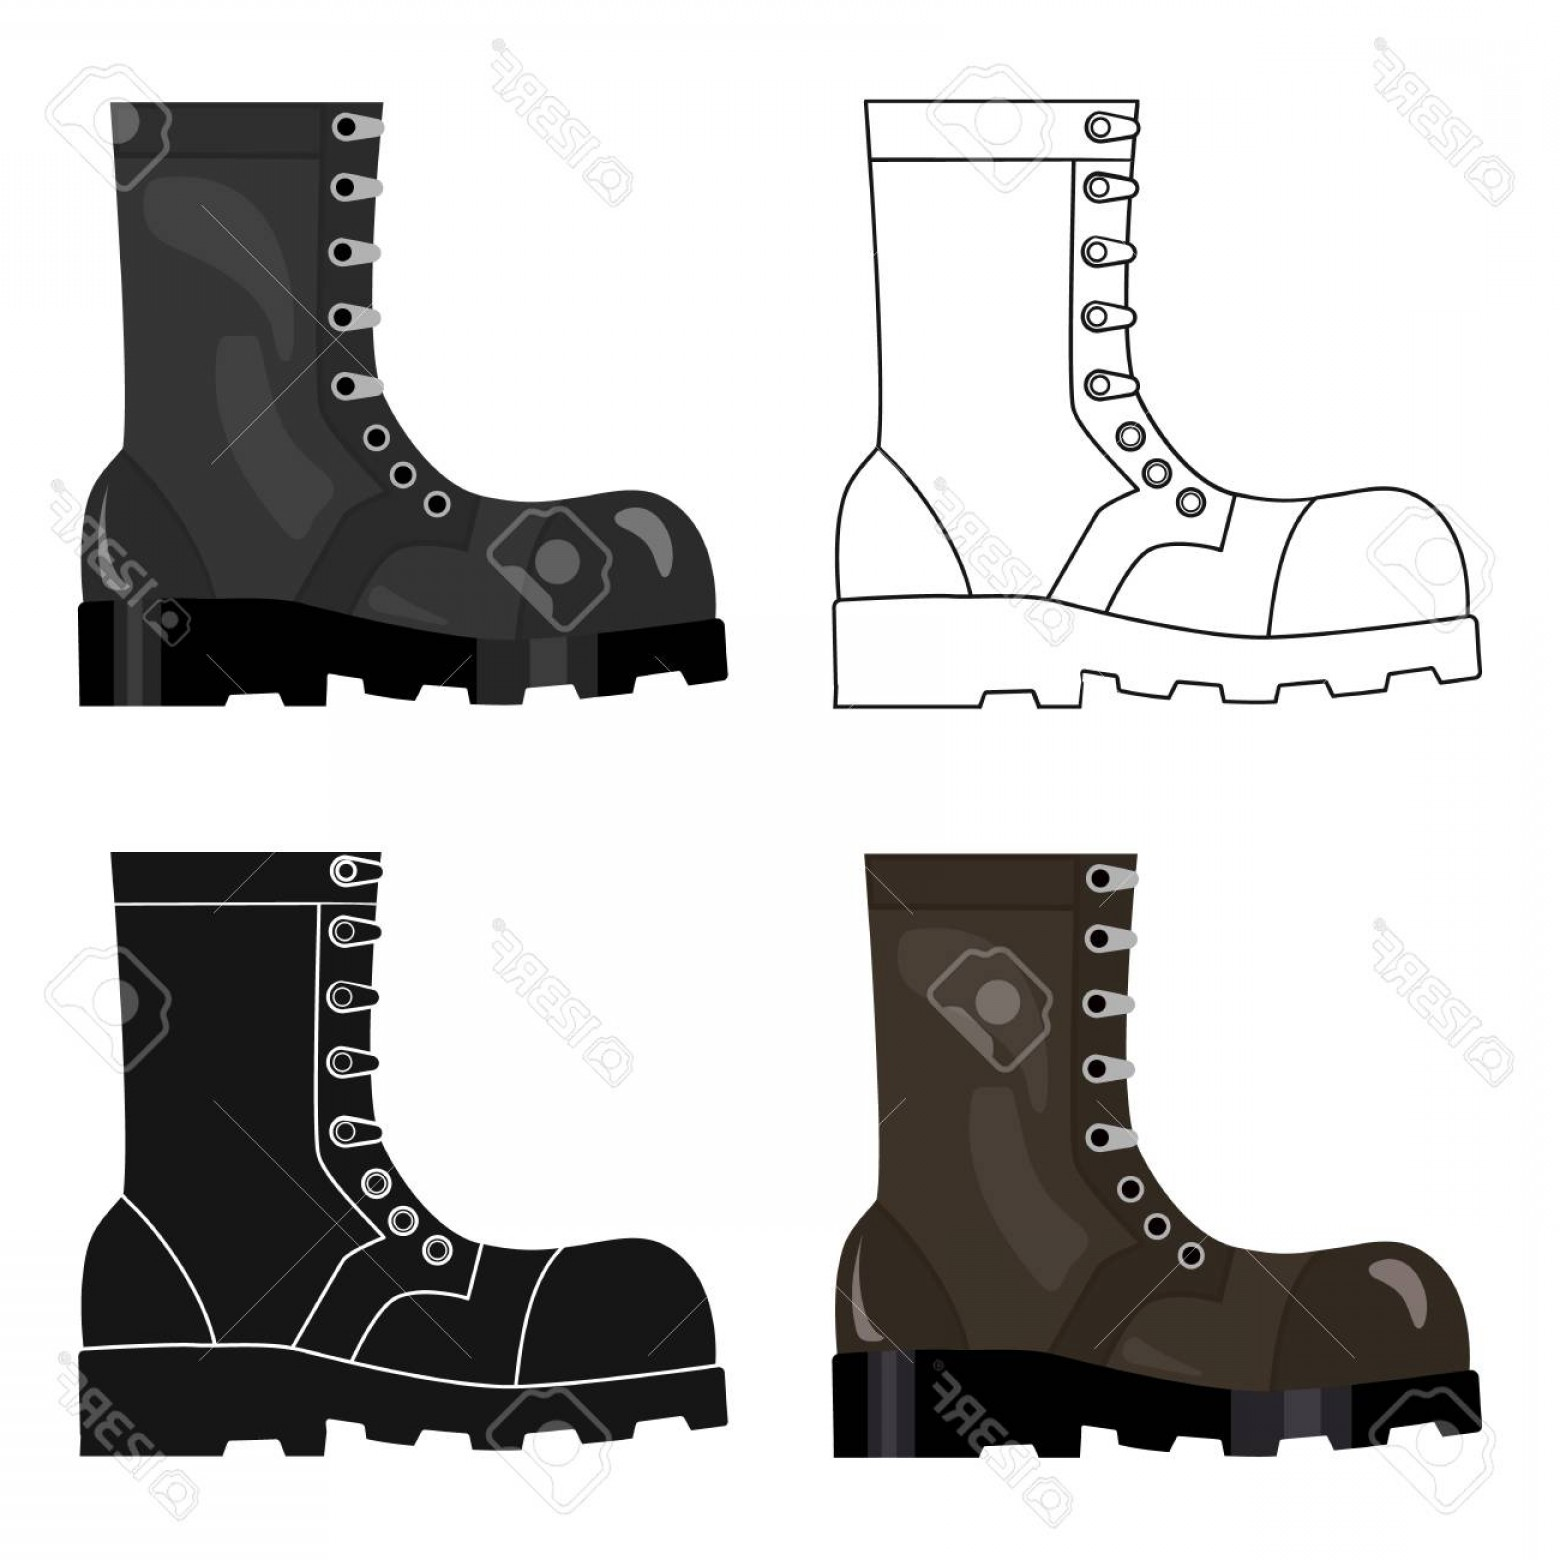 1560x1560 Photostock Vector Army Combat Boots Icon In Cartoon Style Isolated